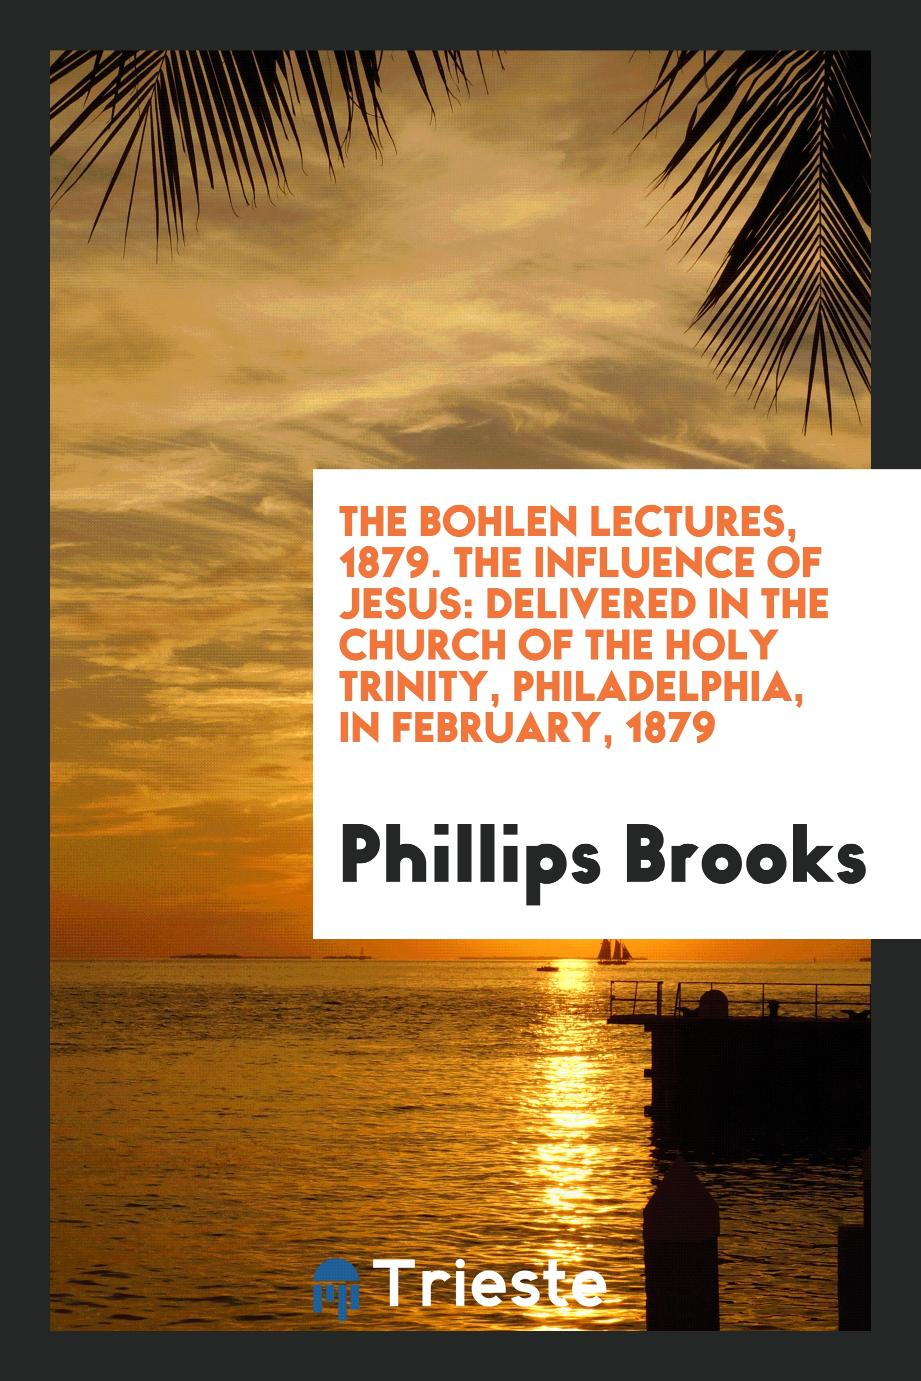 The Bohlen Lectures, 1879. The Influence of Jesus: Delivered in the Church of the Holy Trinity, Philadelphia, in February, 1879